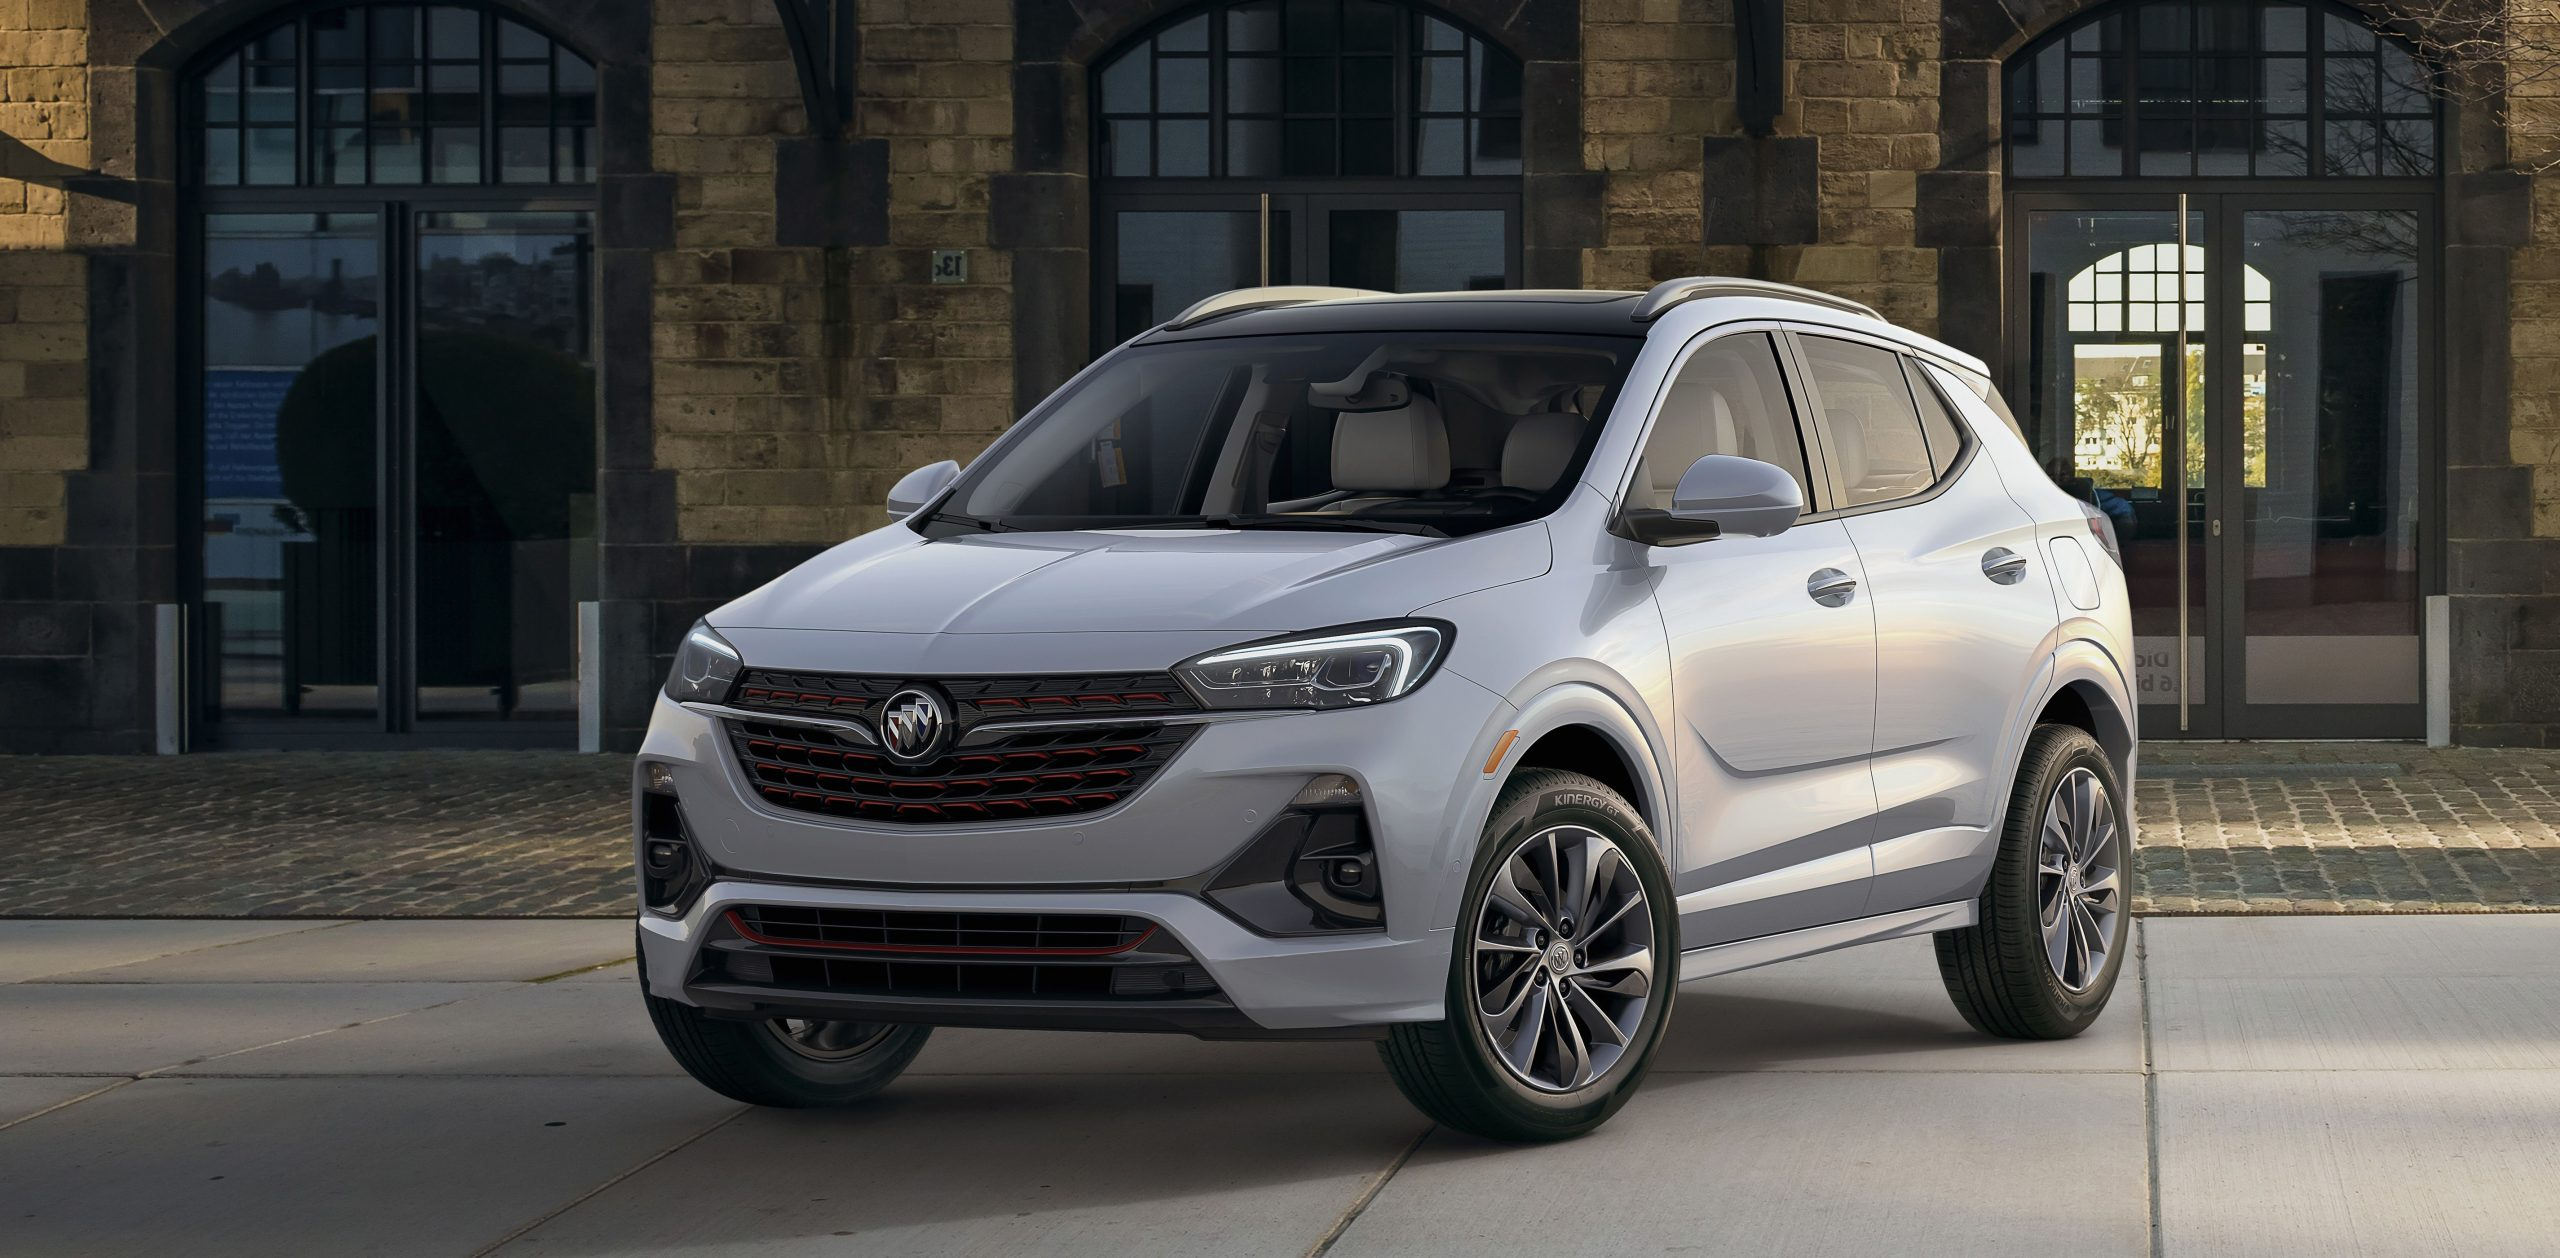 2020 Buick Encore Gx: What We Know So Far New 2021 Buick Encore Gx Build And Price, Build, Colors